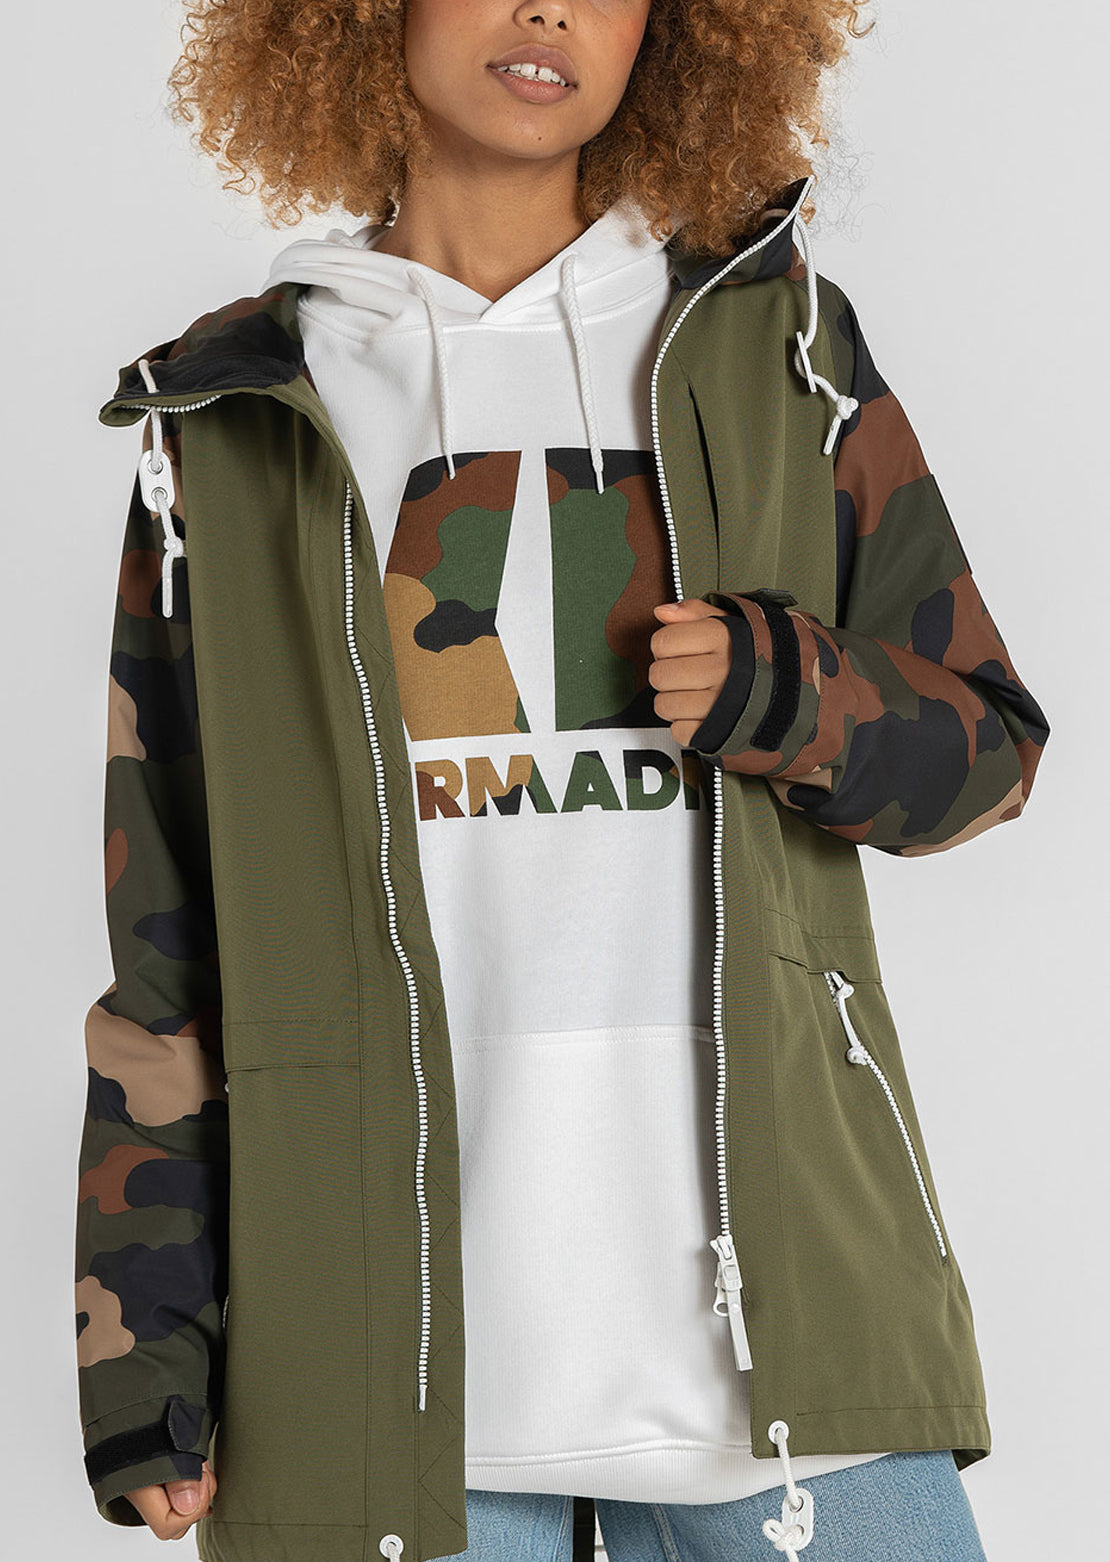 Armada Men's Icon Hoodie White